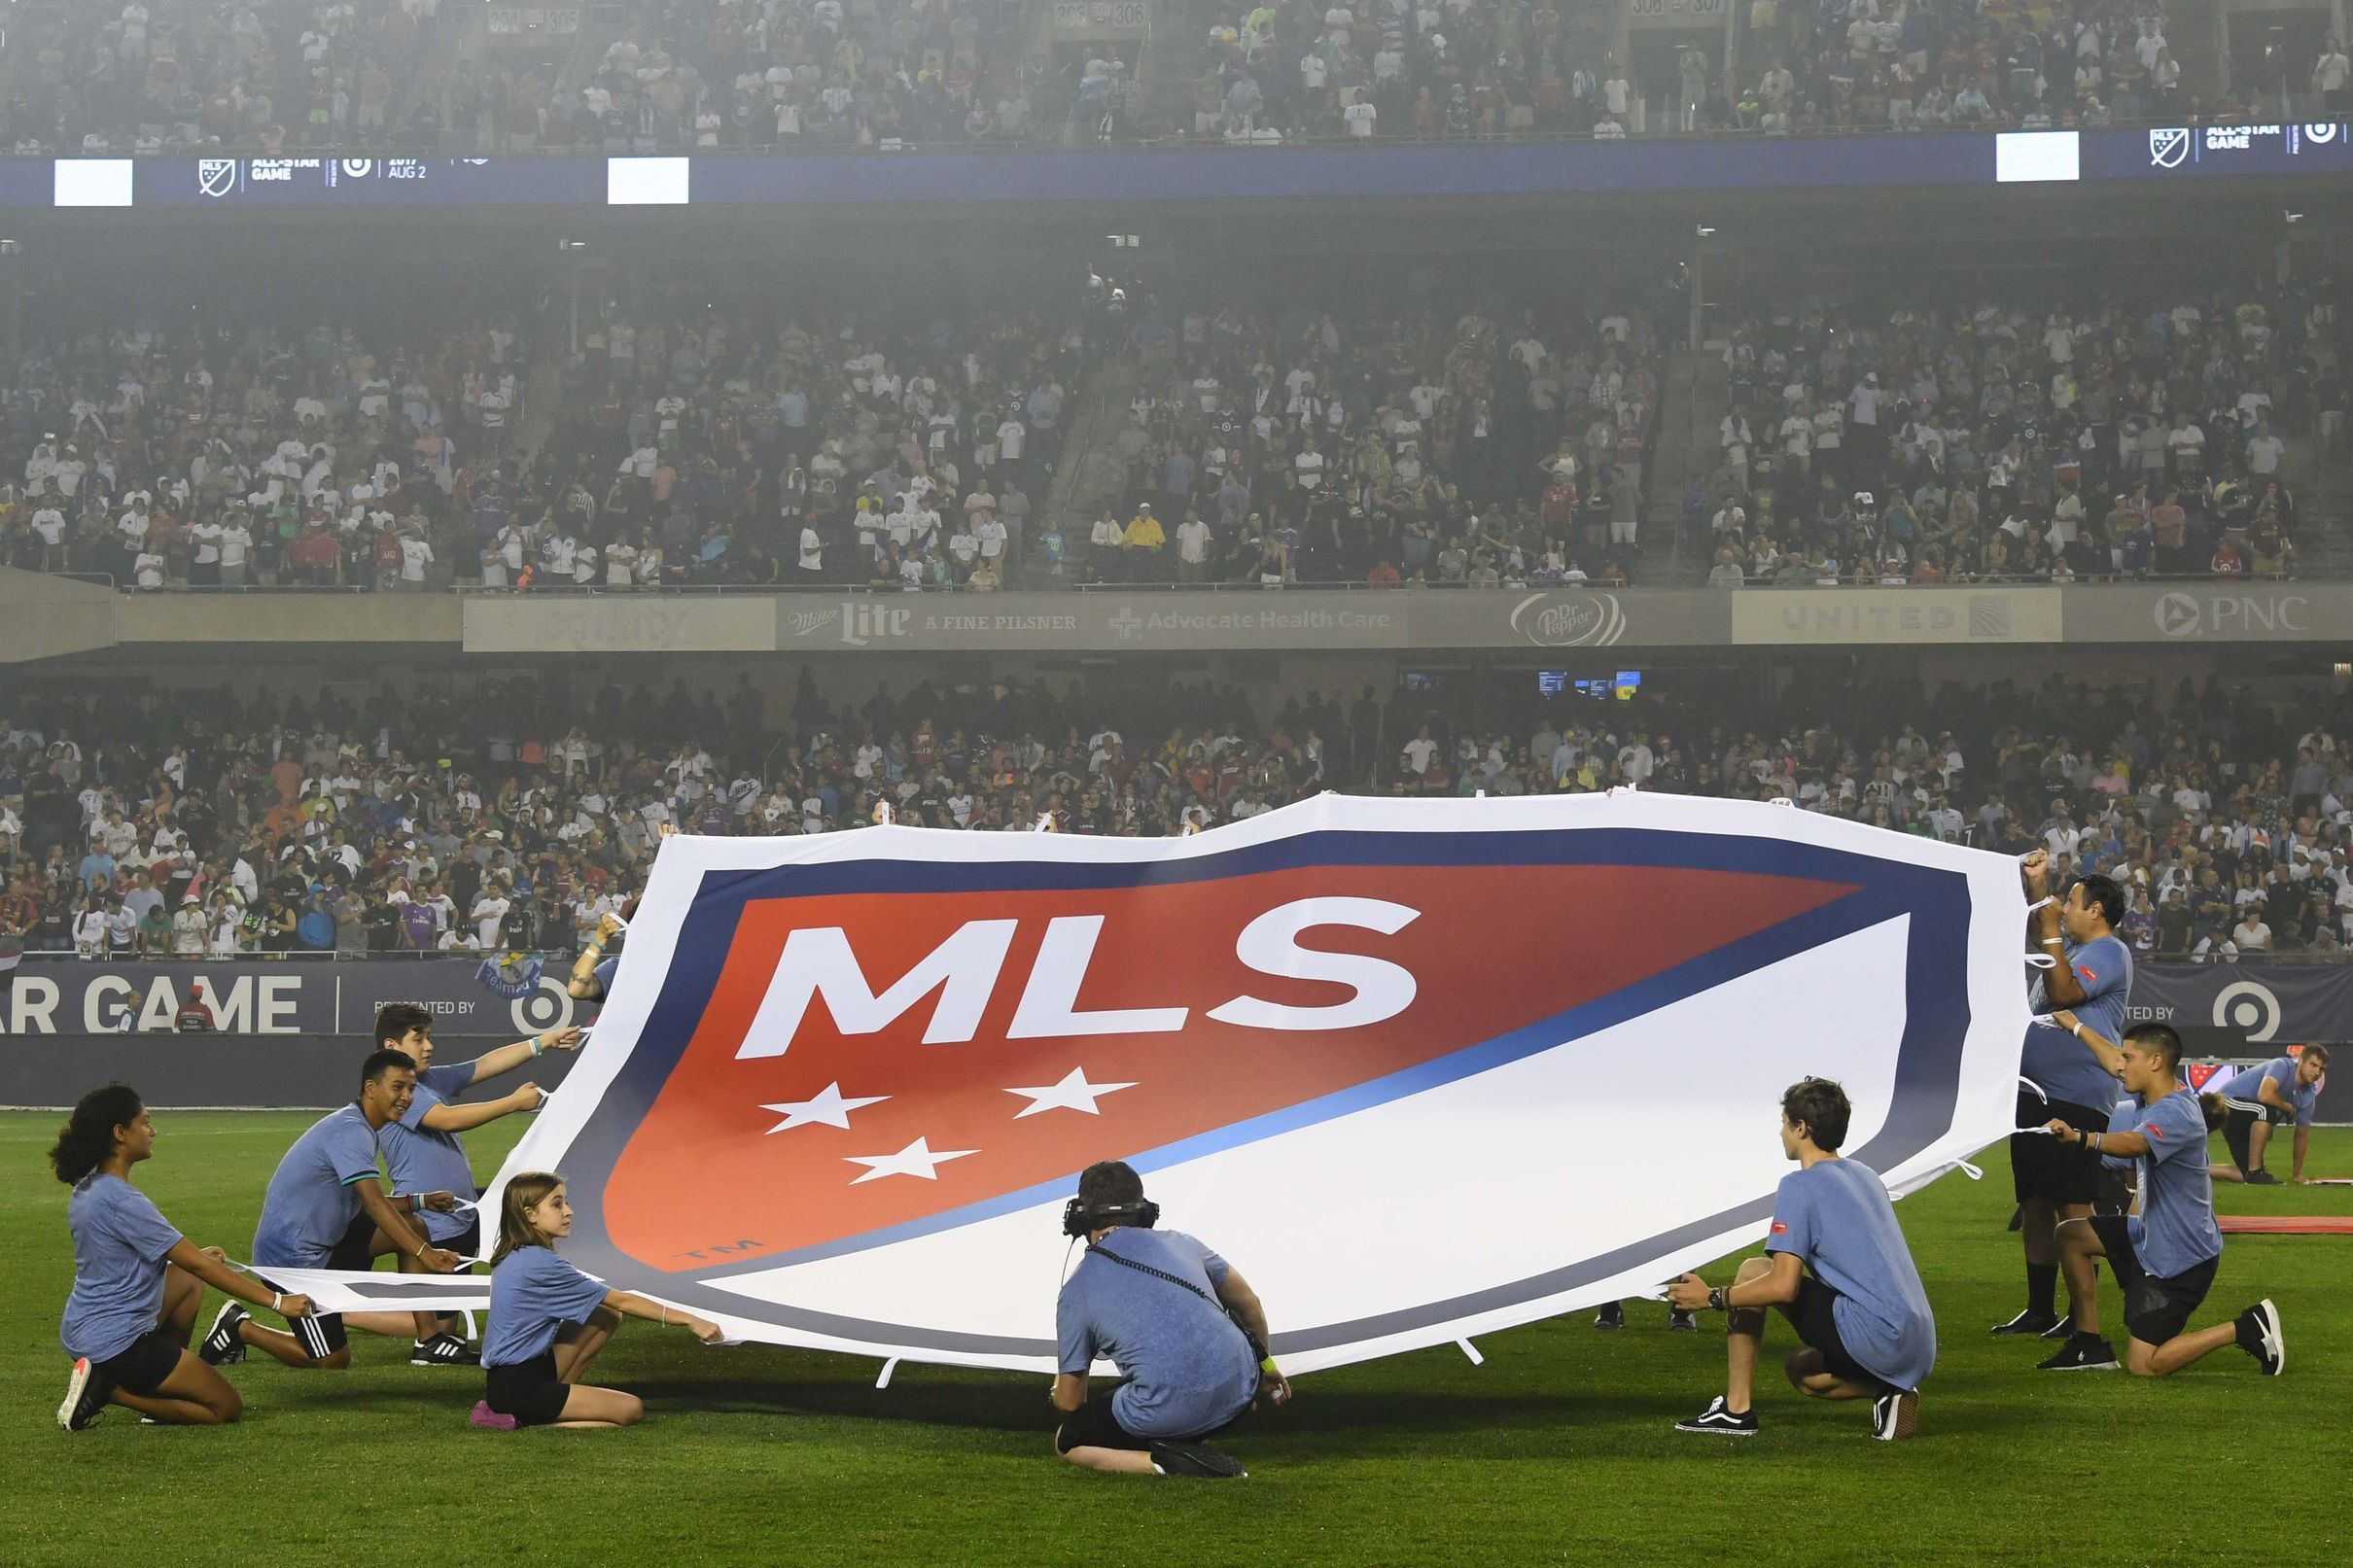 Report Lafc Tentatively Tabbed To Host 2020 Mls All Star Game Angels On Parade Los Angeles Football Club All Star Major League Soccer